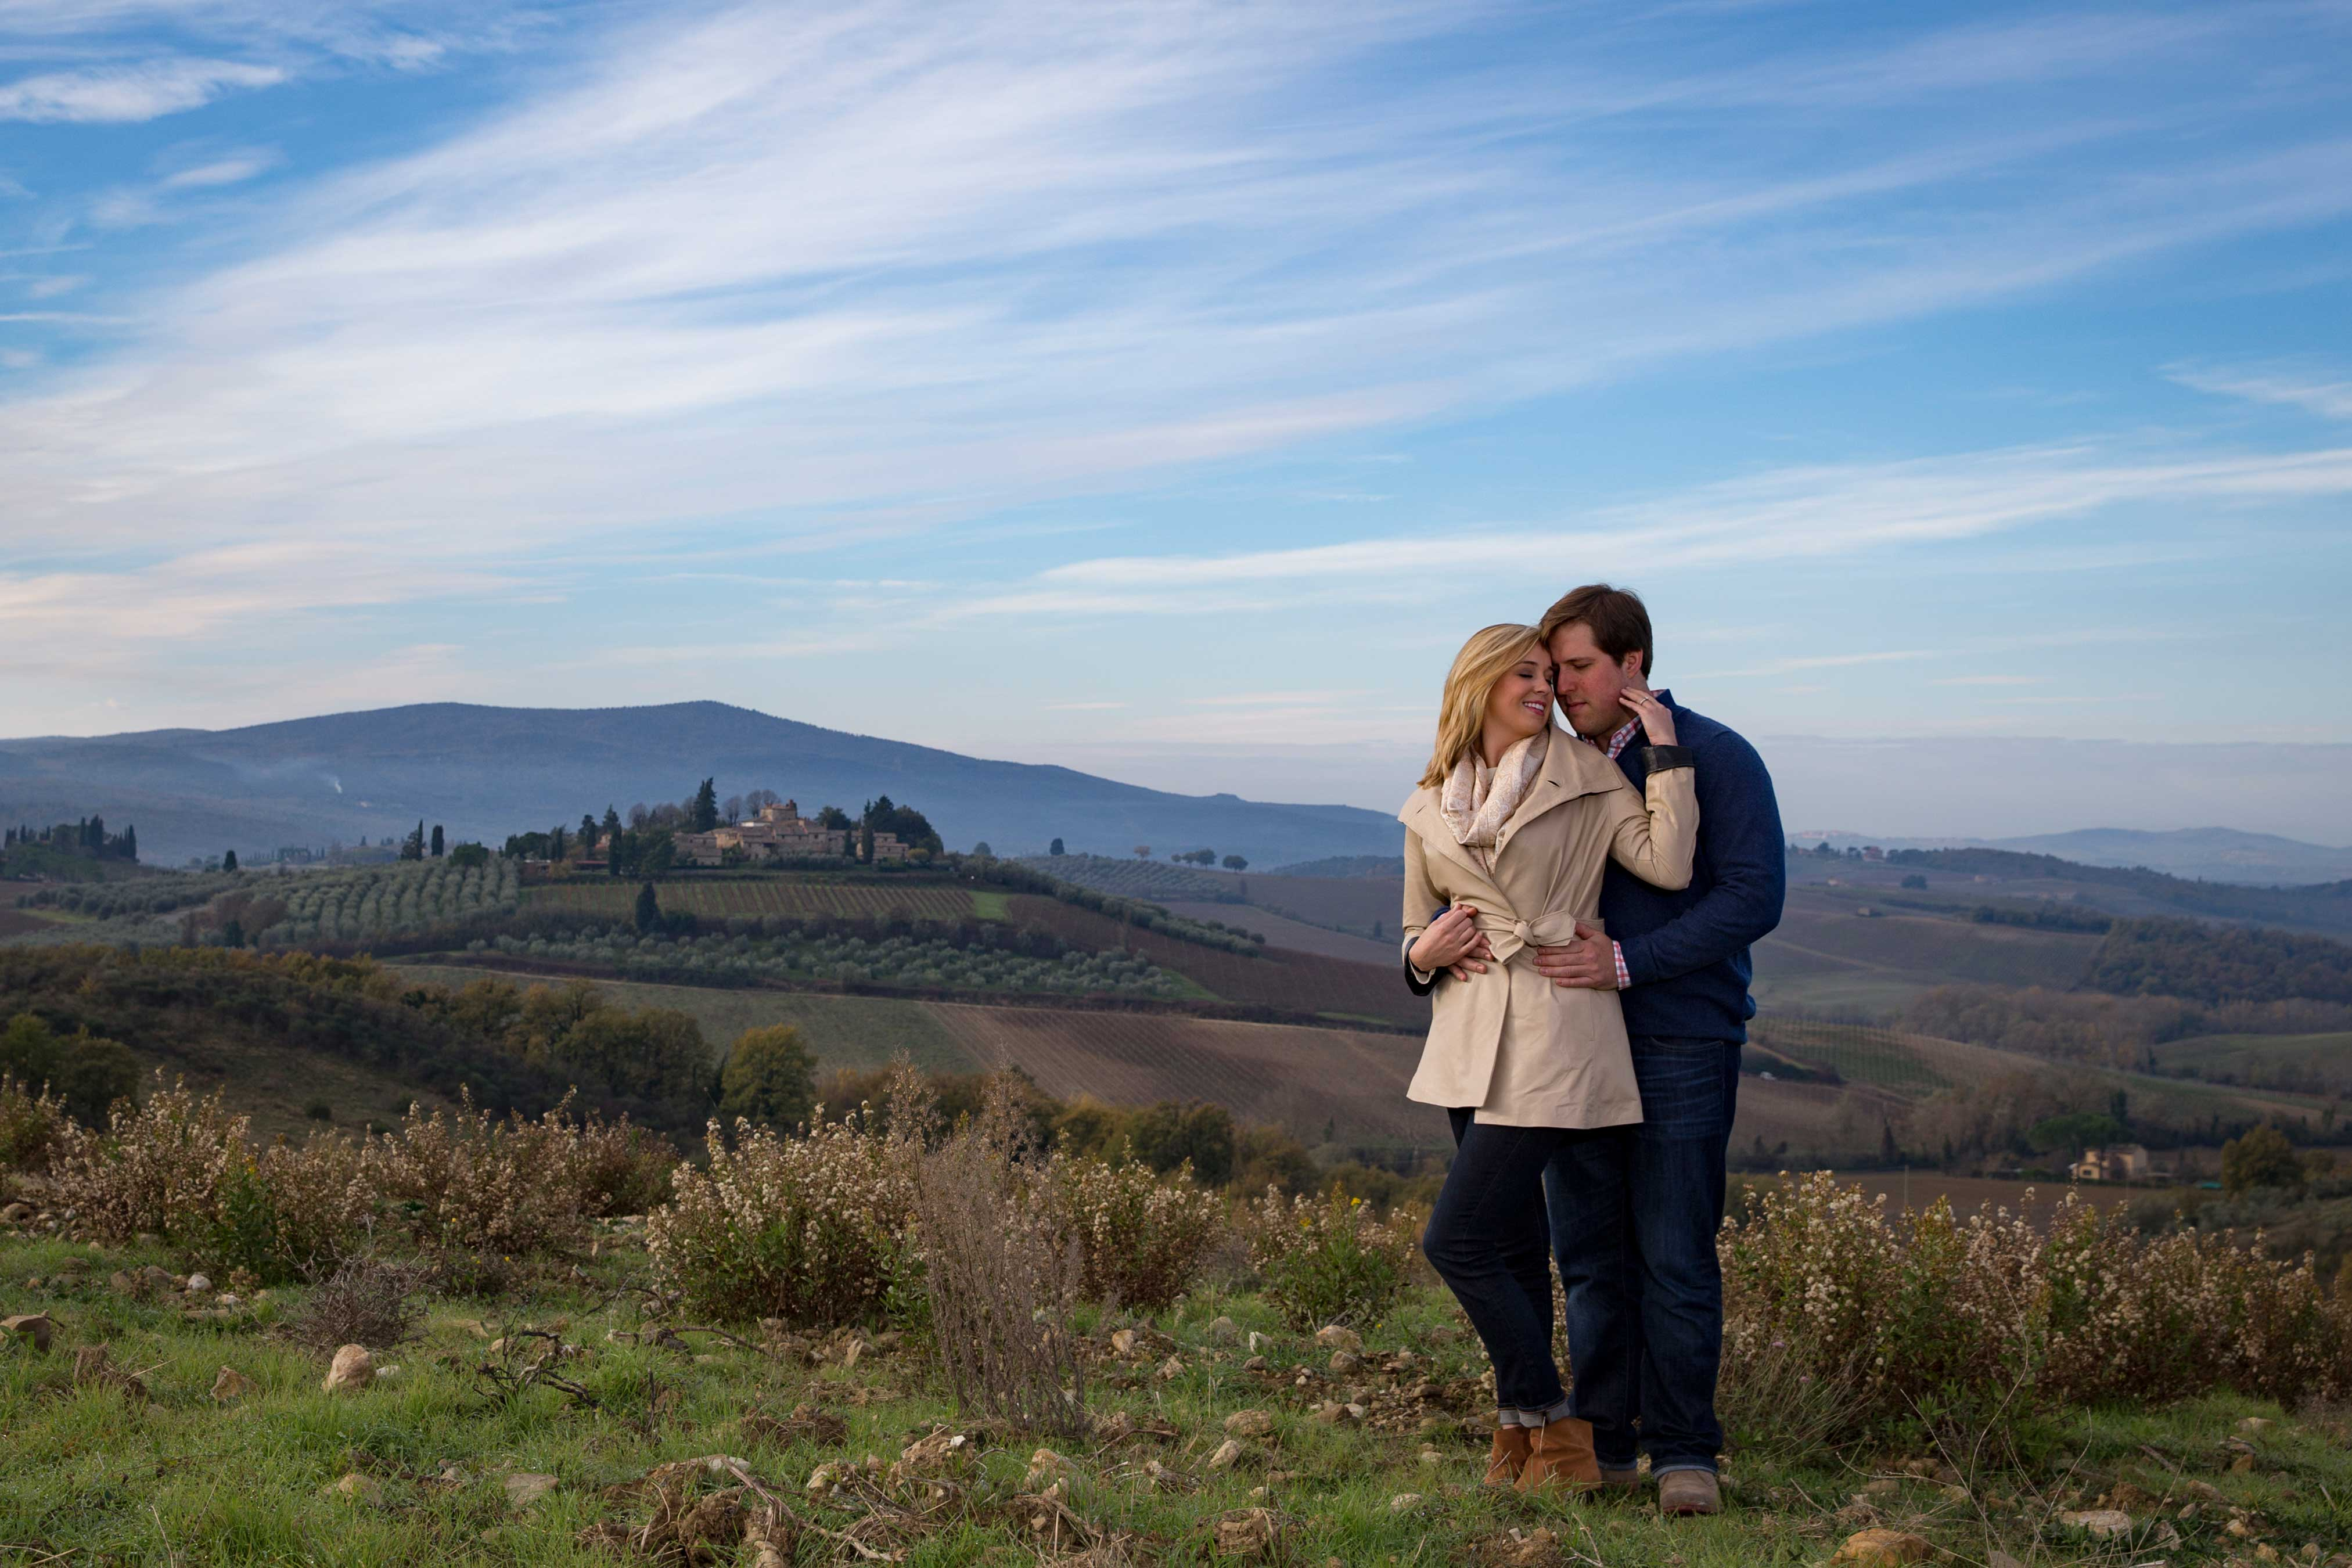 Bride and groom engagement photo session in Europe